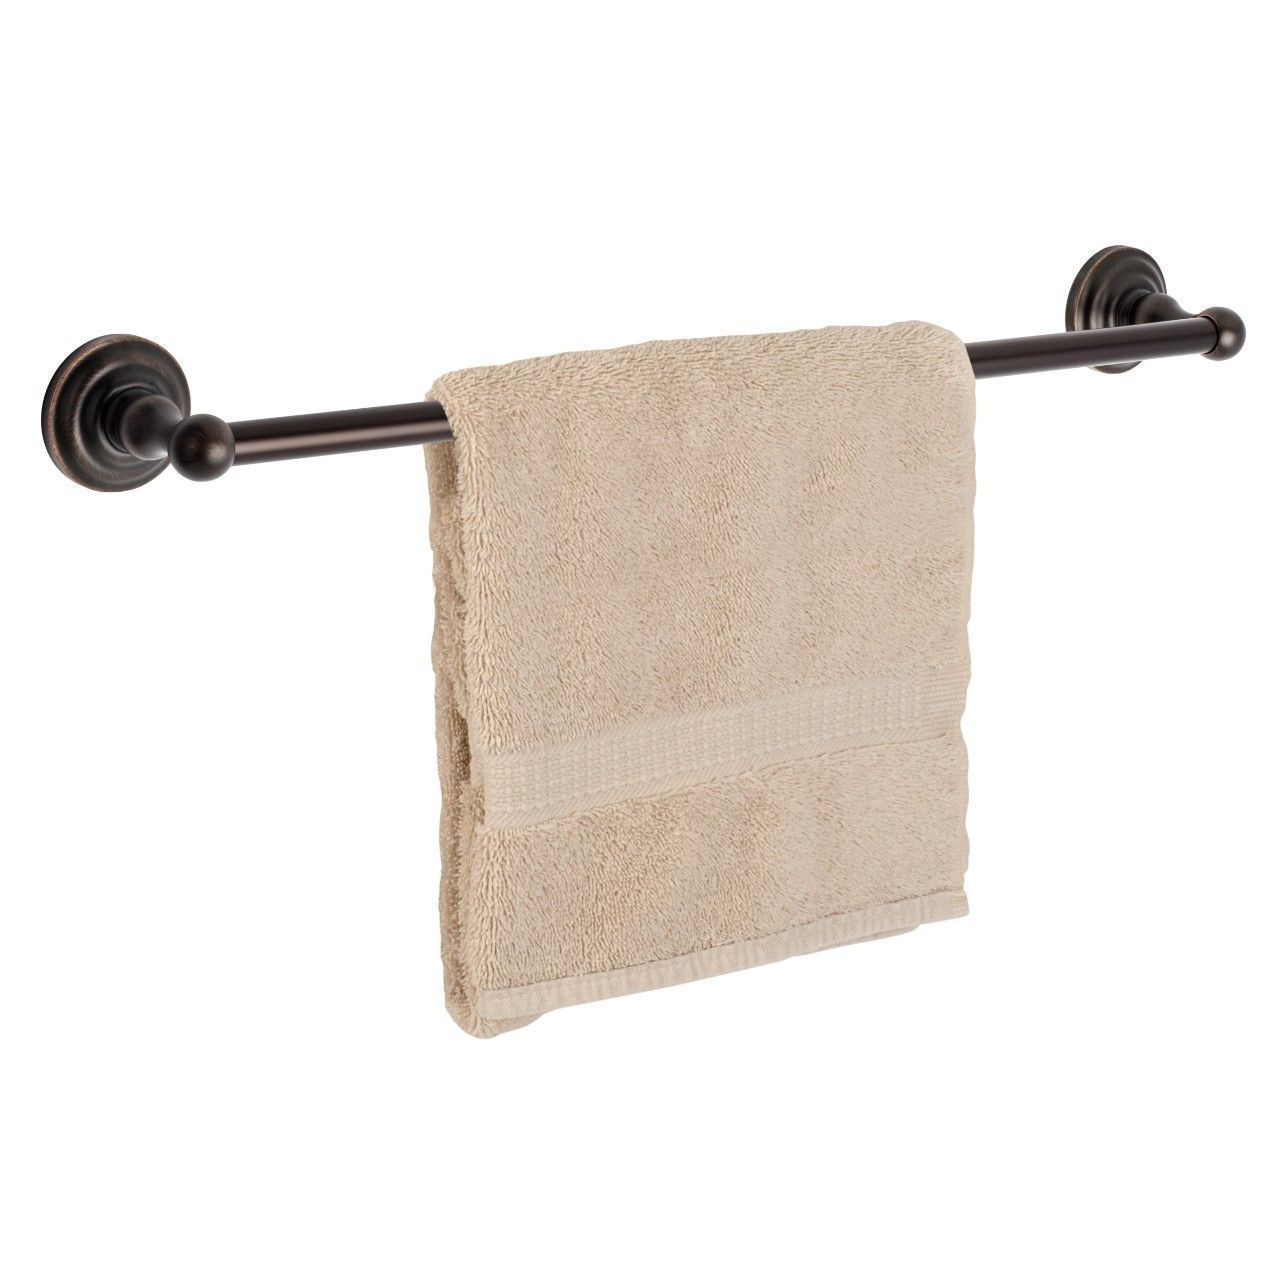 "Dynasty Hardware Palisades 3830-ORB Oil Rubbed Bronze 30"" Single Towel Bar"